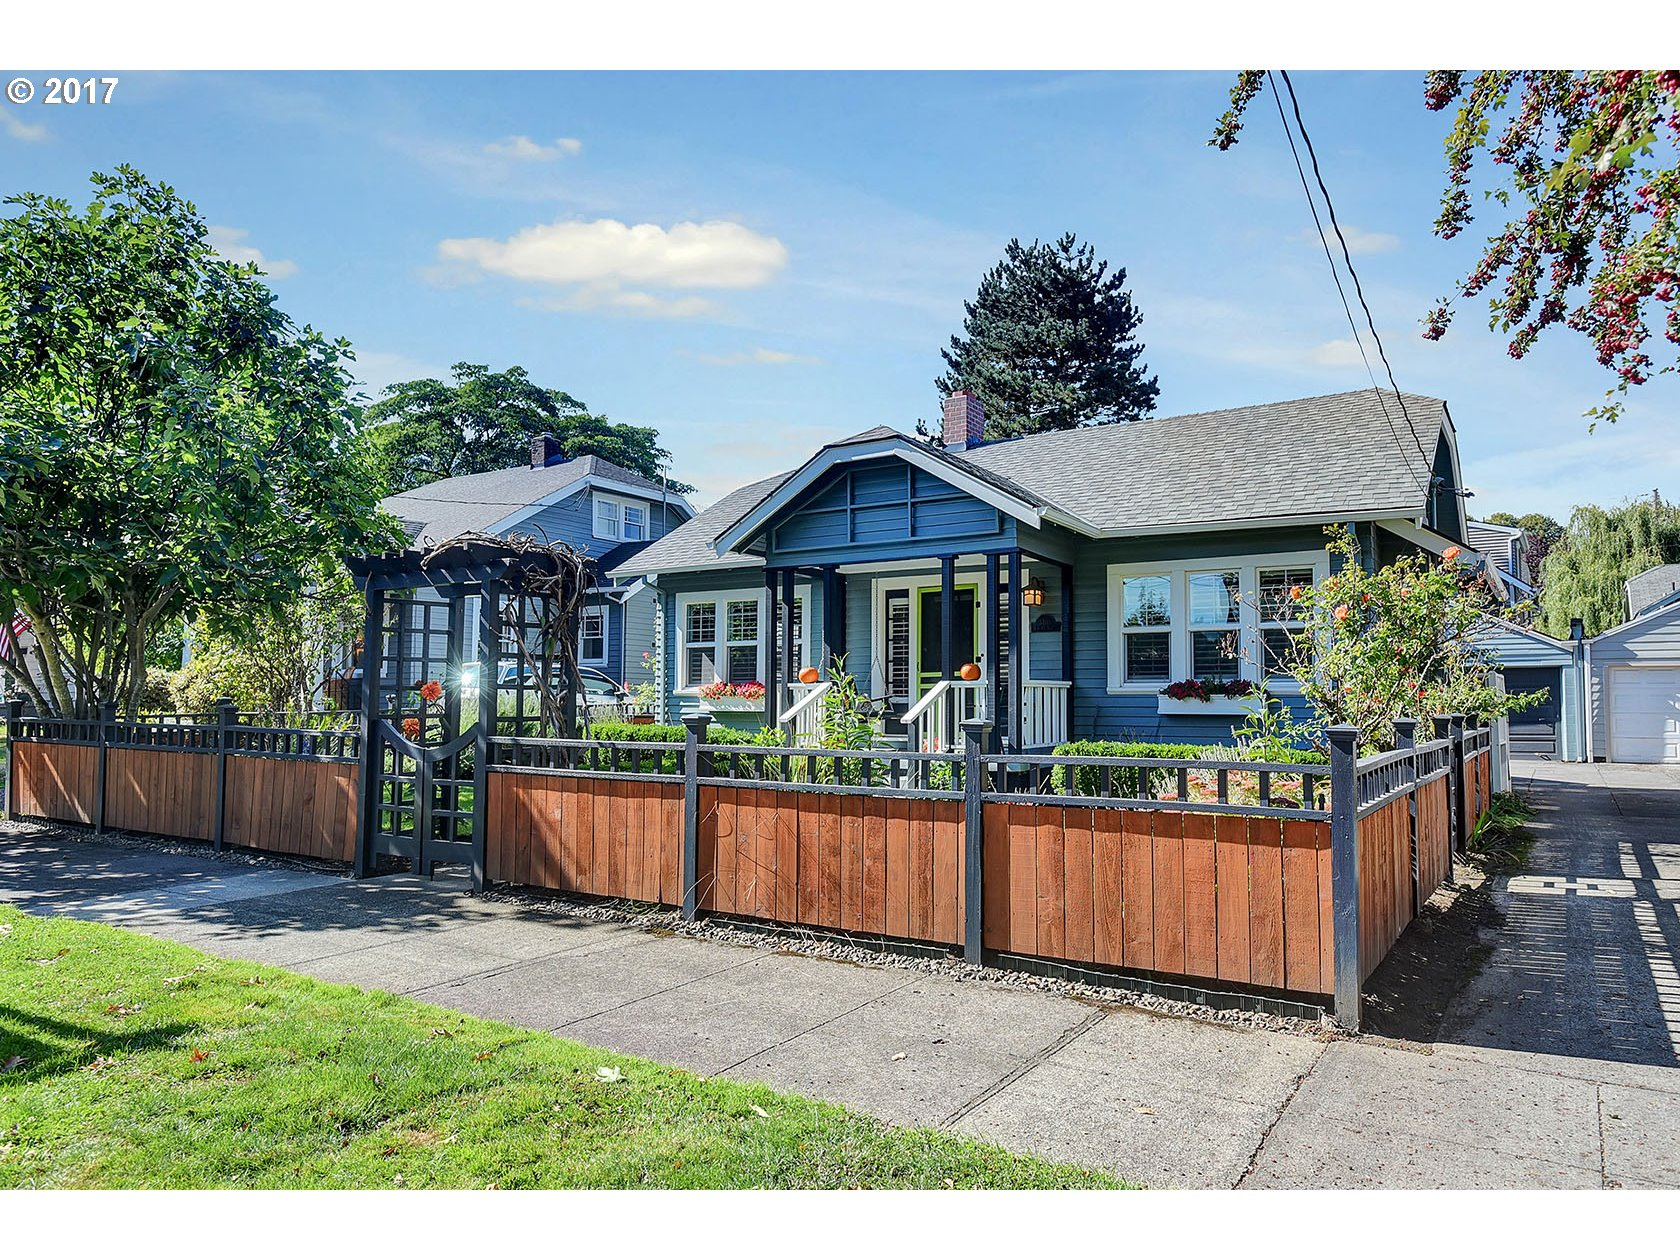 1756 sq. ft 3 bedrooms 2 bathrooms  House For Sale,Portland, OR